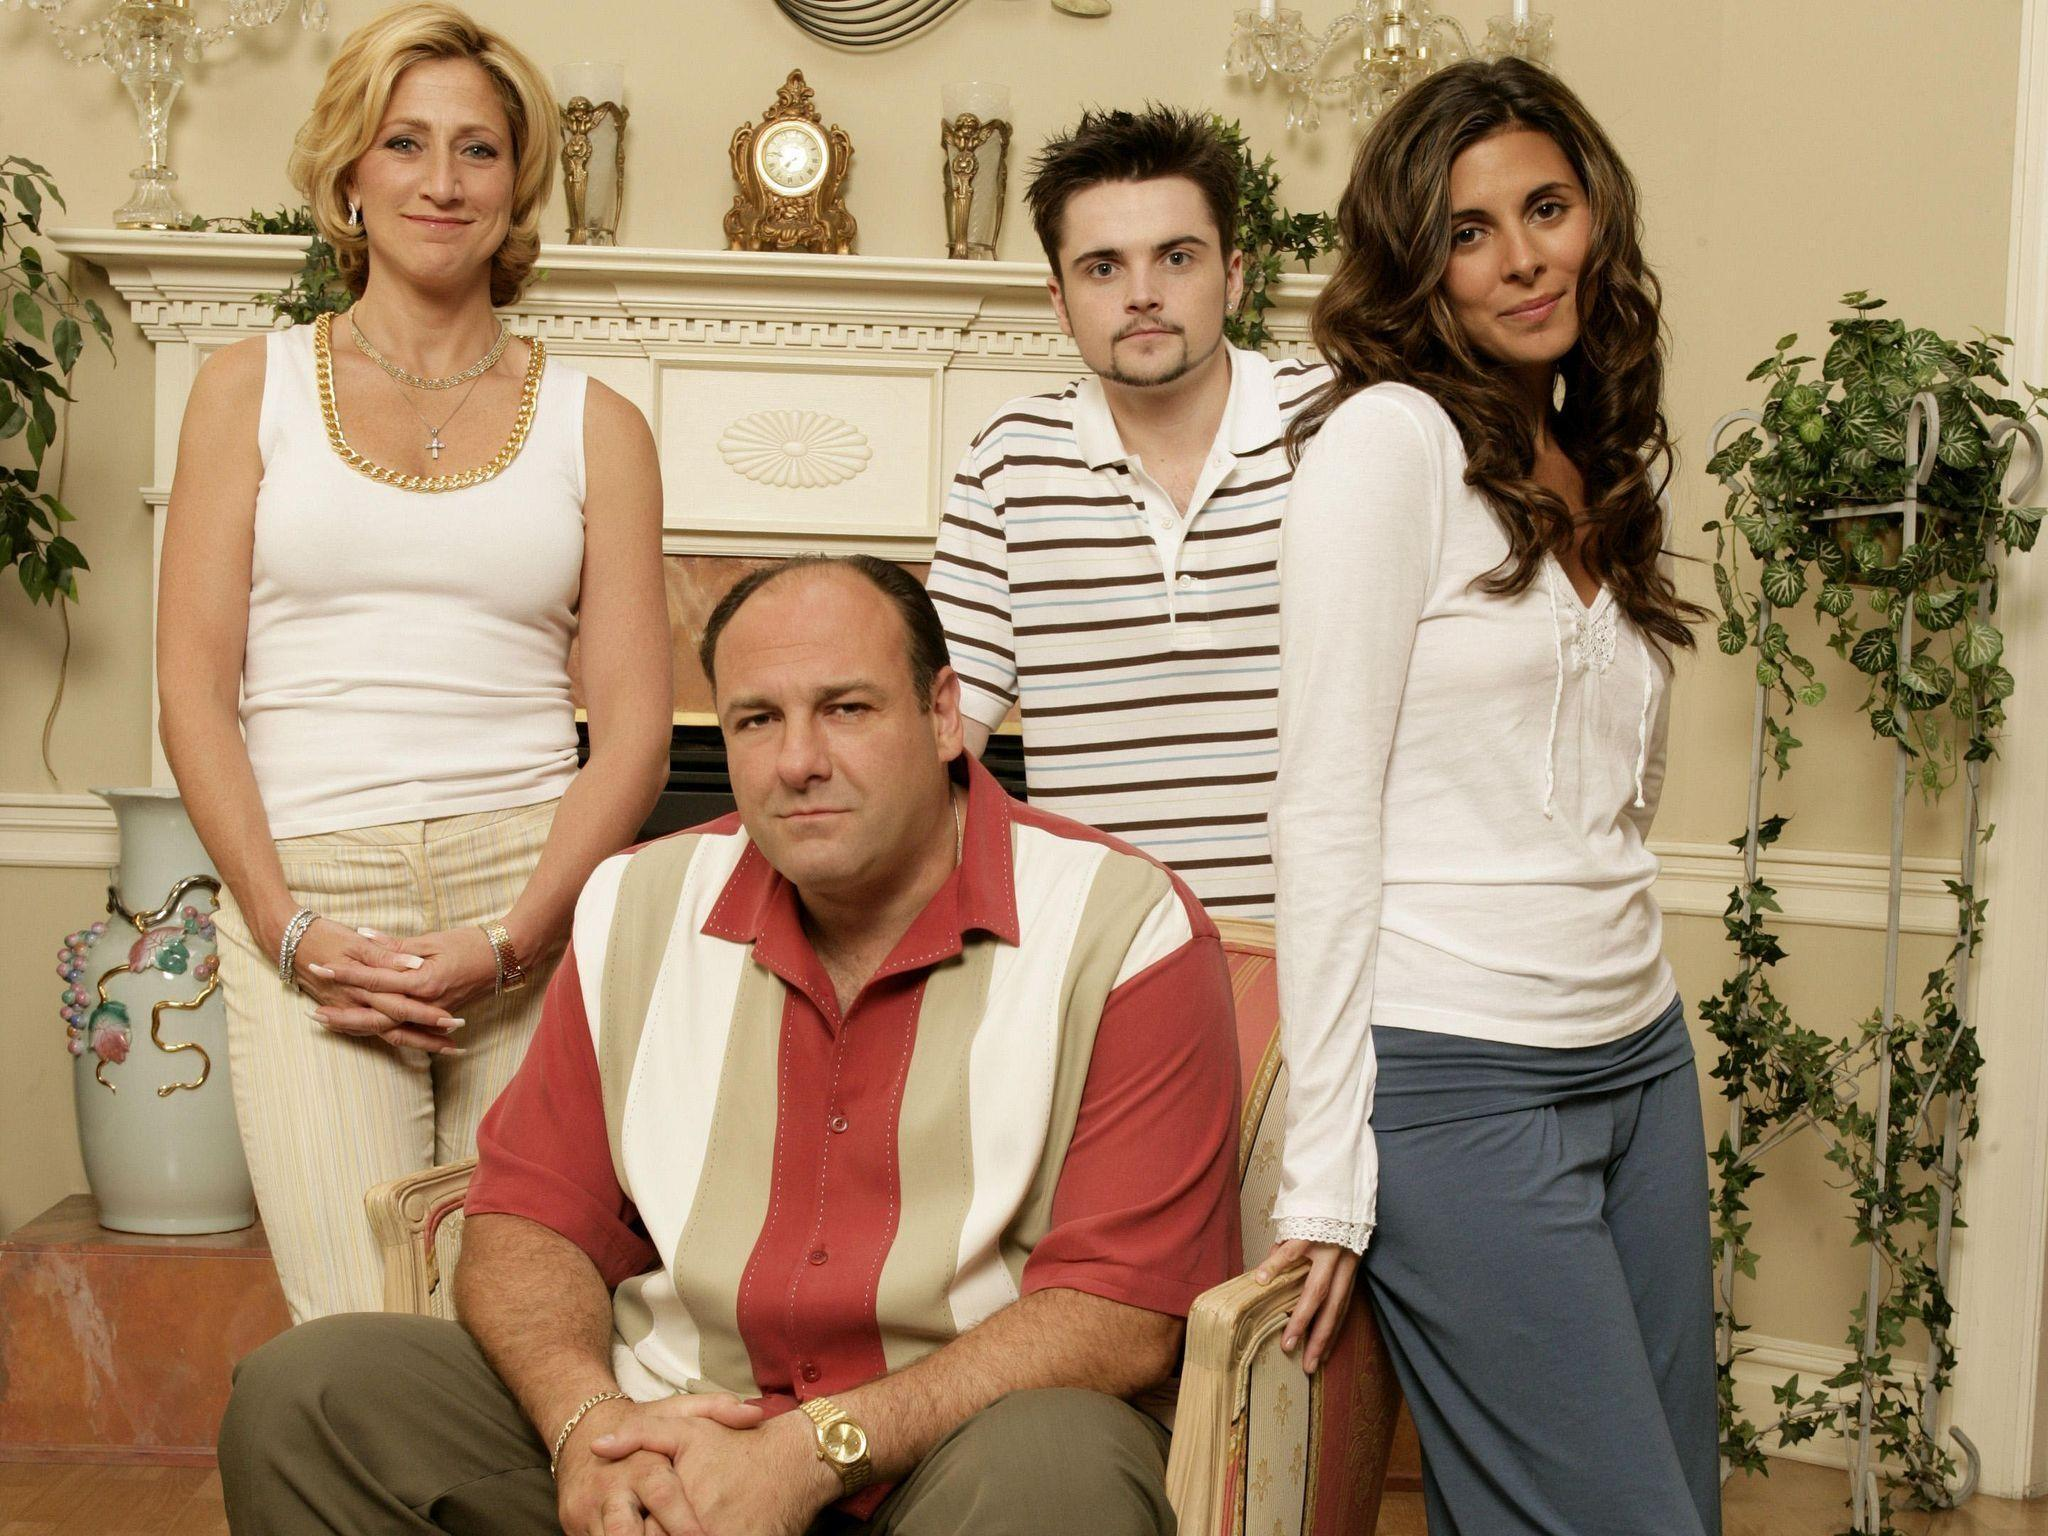 The Sopranos Computer Wallpapers, Desktop Backgrounds 2048x1536 Id